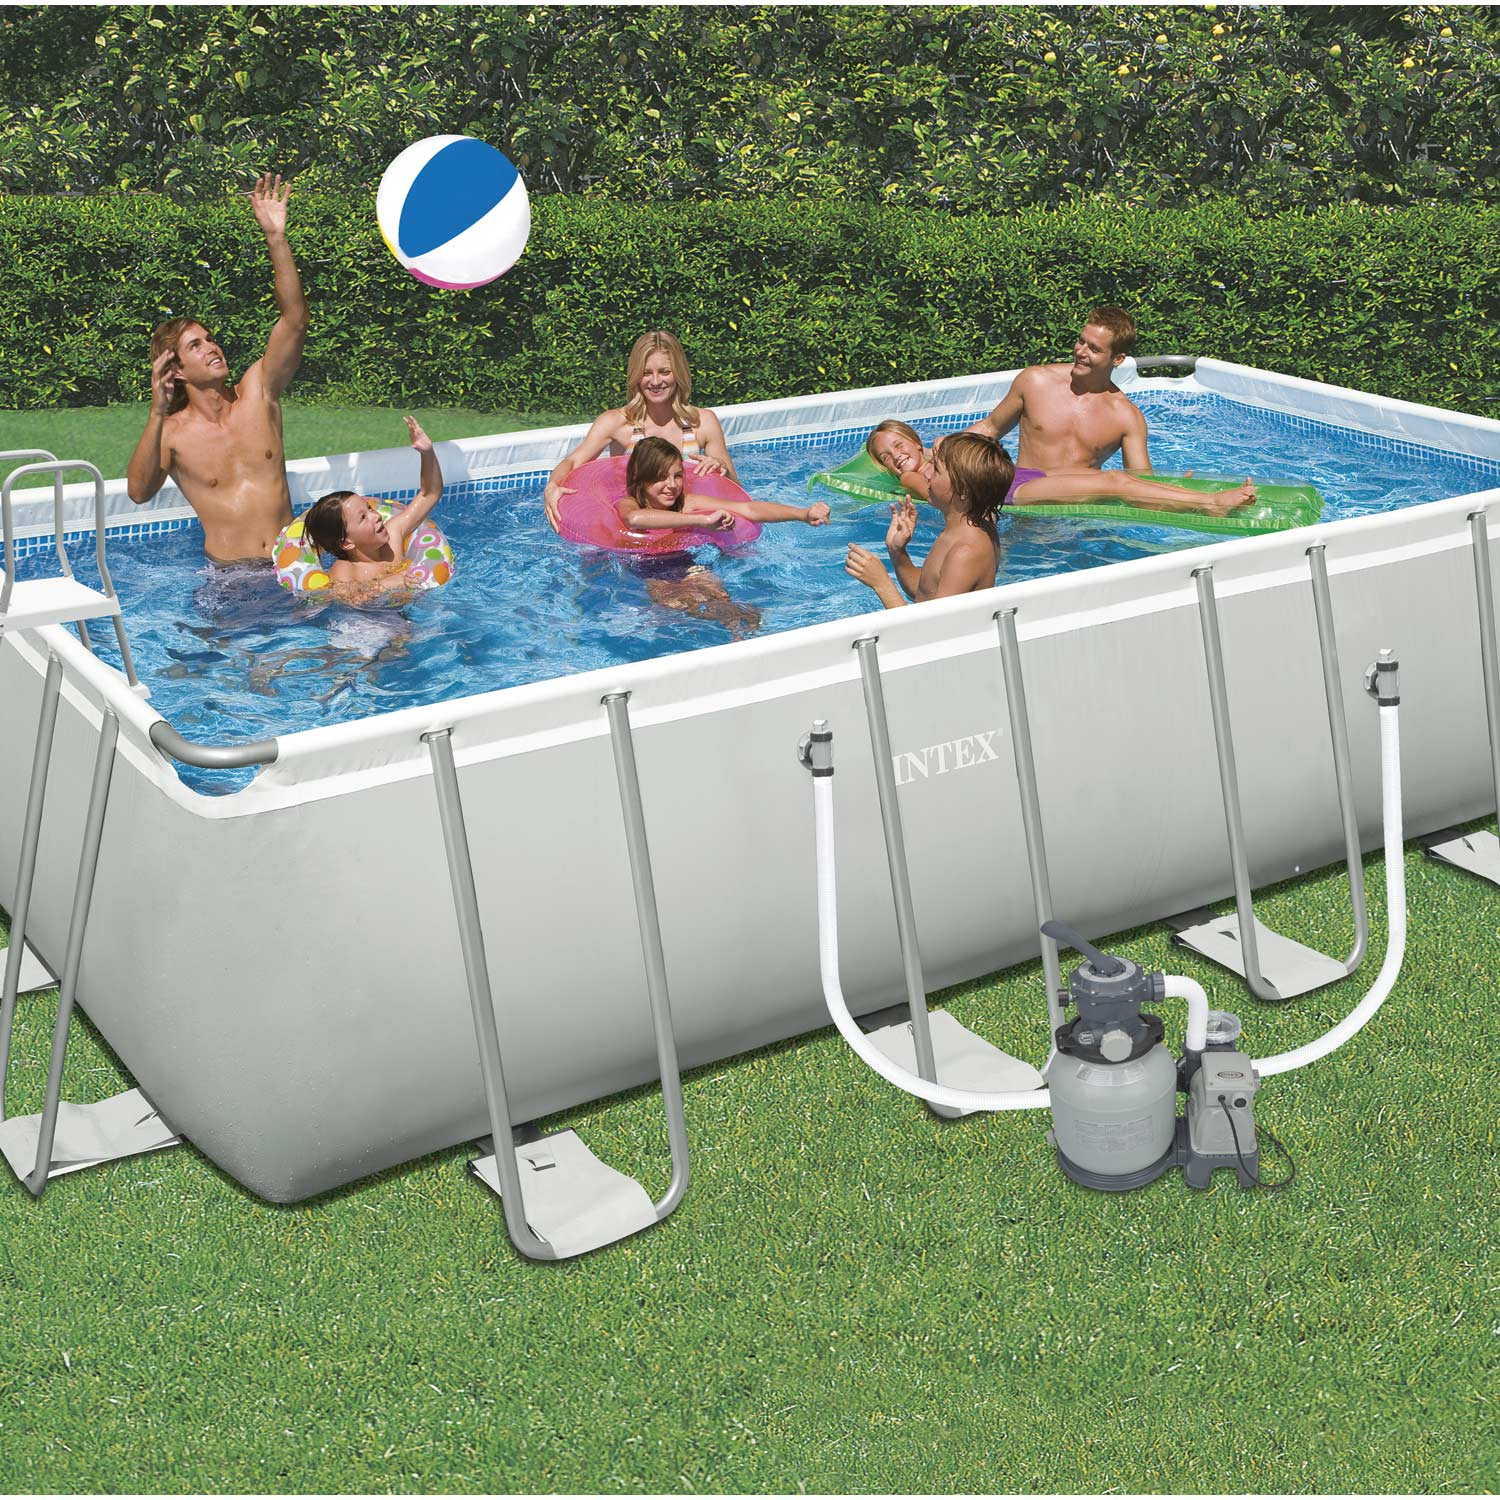 Piscine hors sol autoportante tubulaire ultra silver intex for Piscine hors sol xxl